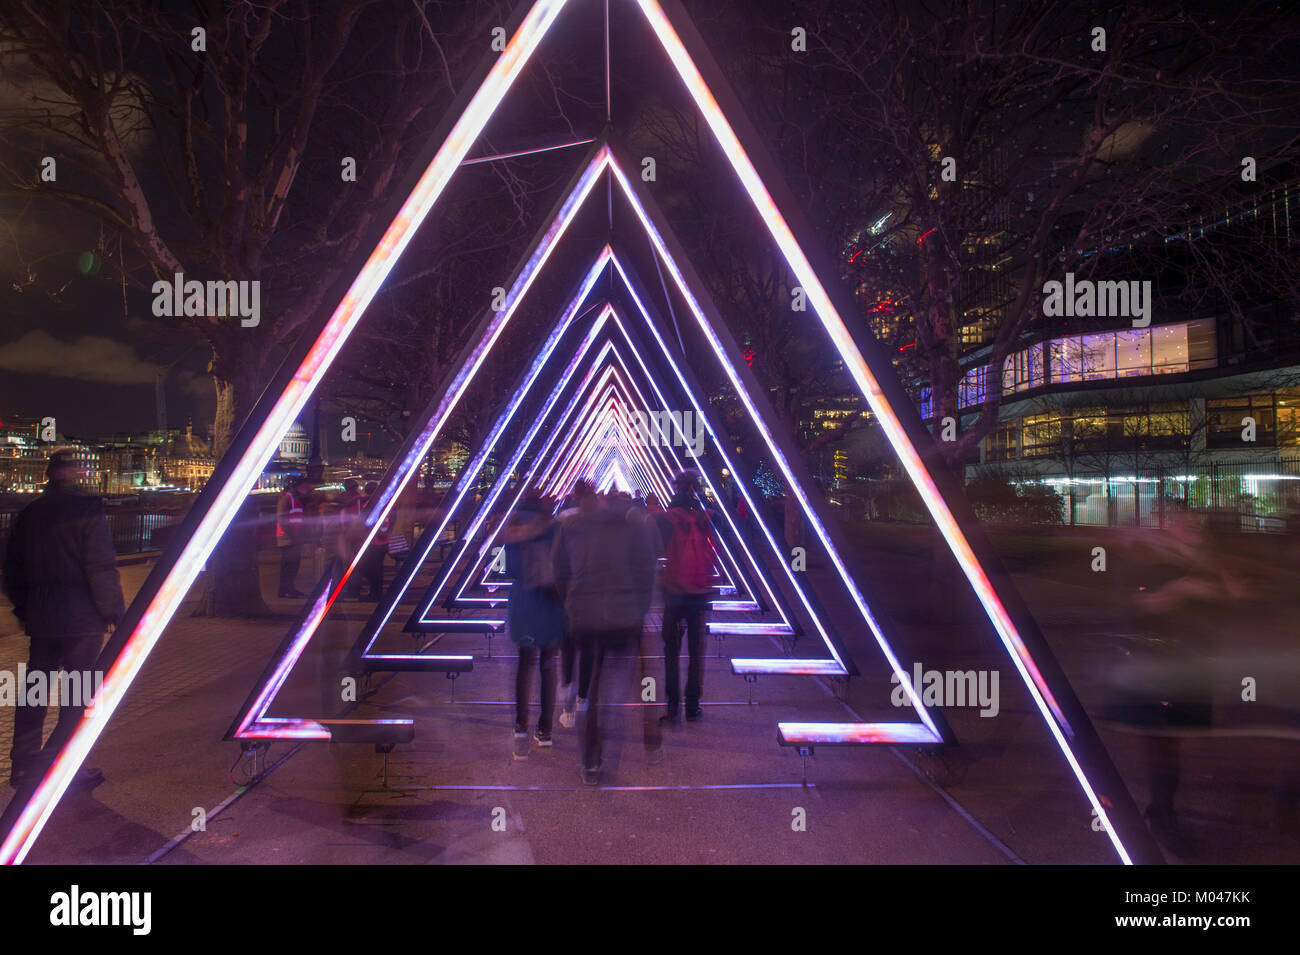 London, UK. 18th Jan, 2018. Locations around central London feature spectacular light displays created by 40 world - Stock Image